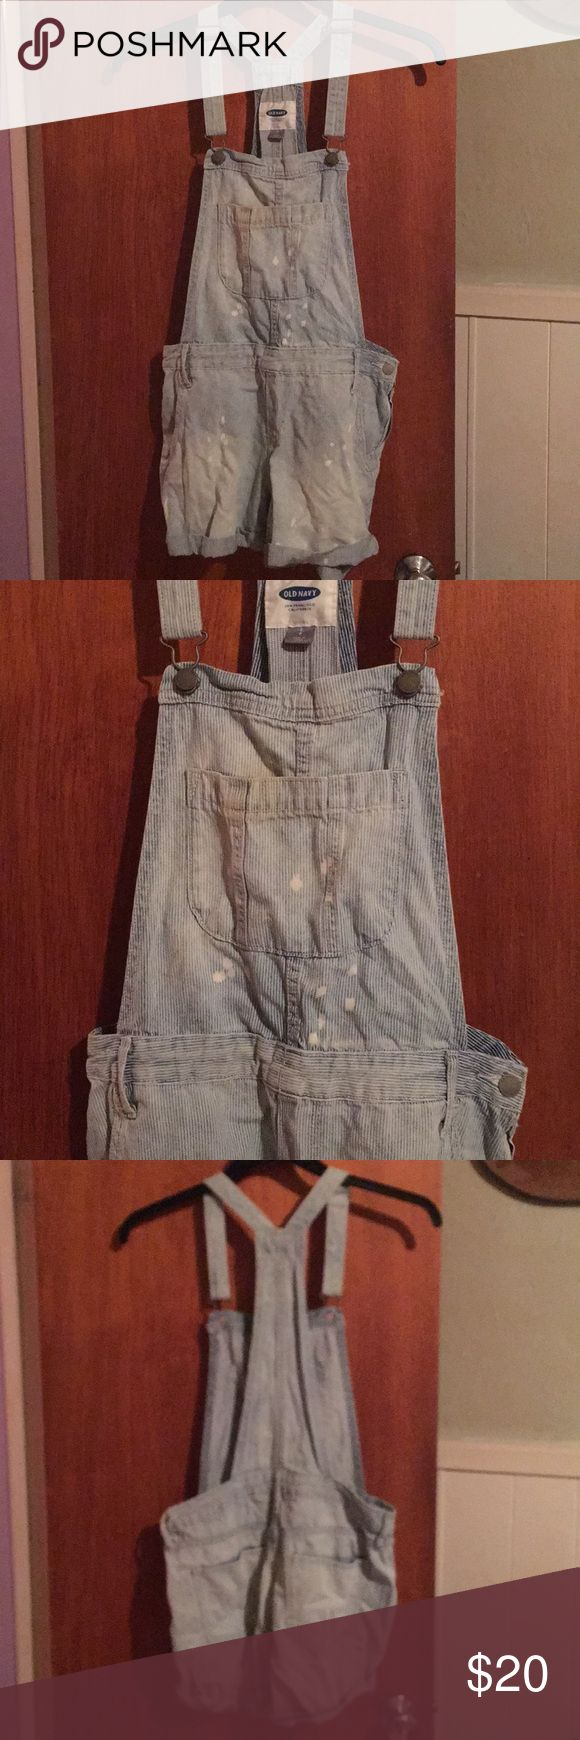 Distressed engineer overalls sz S Gently worn Old Navy factory distressed overalls. The are light denim with white pinstripes. Waist is 32 inseam 3. These are meant to be baggy. Old Navy Shorts